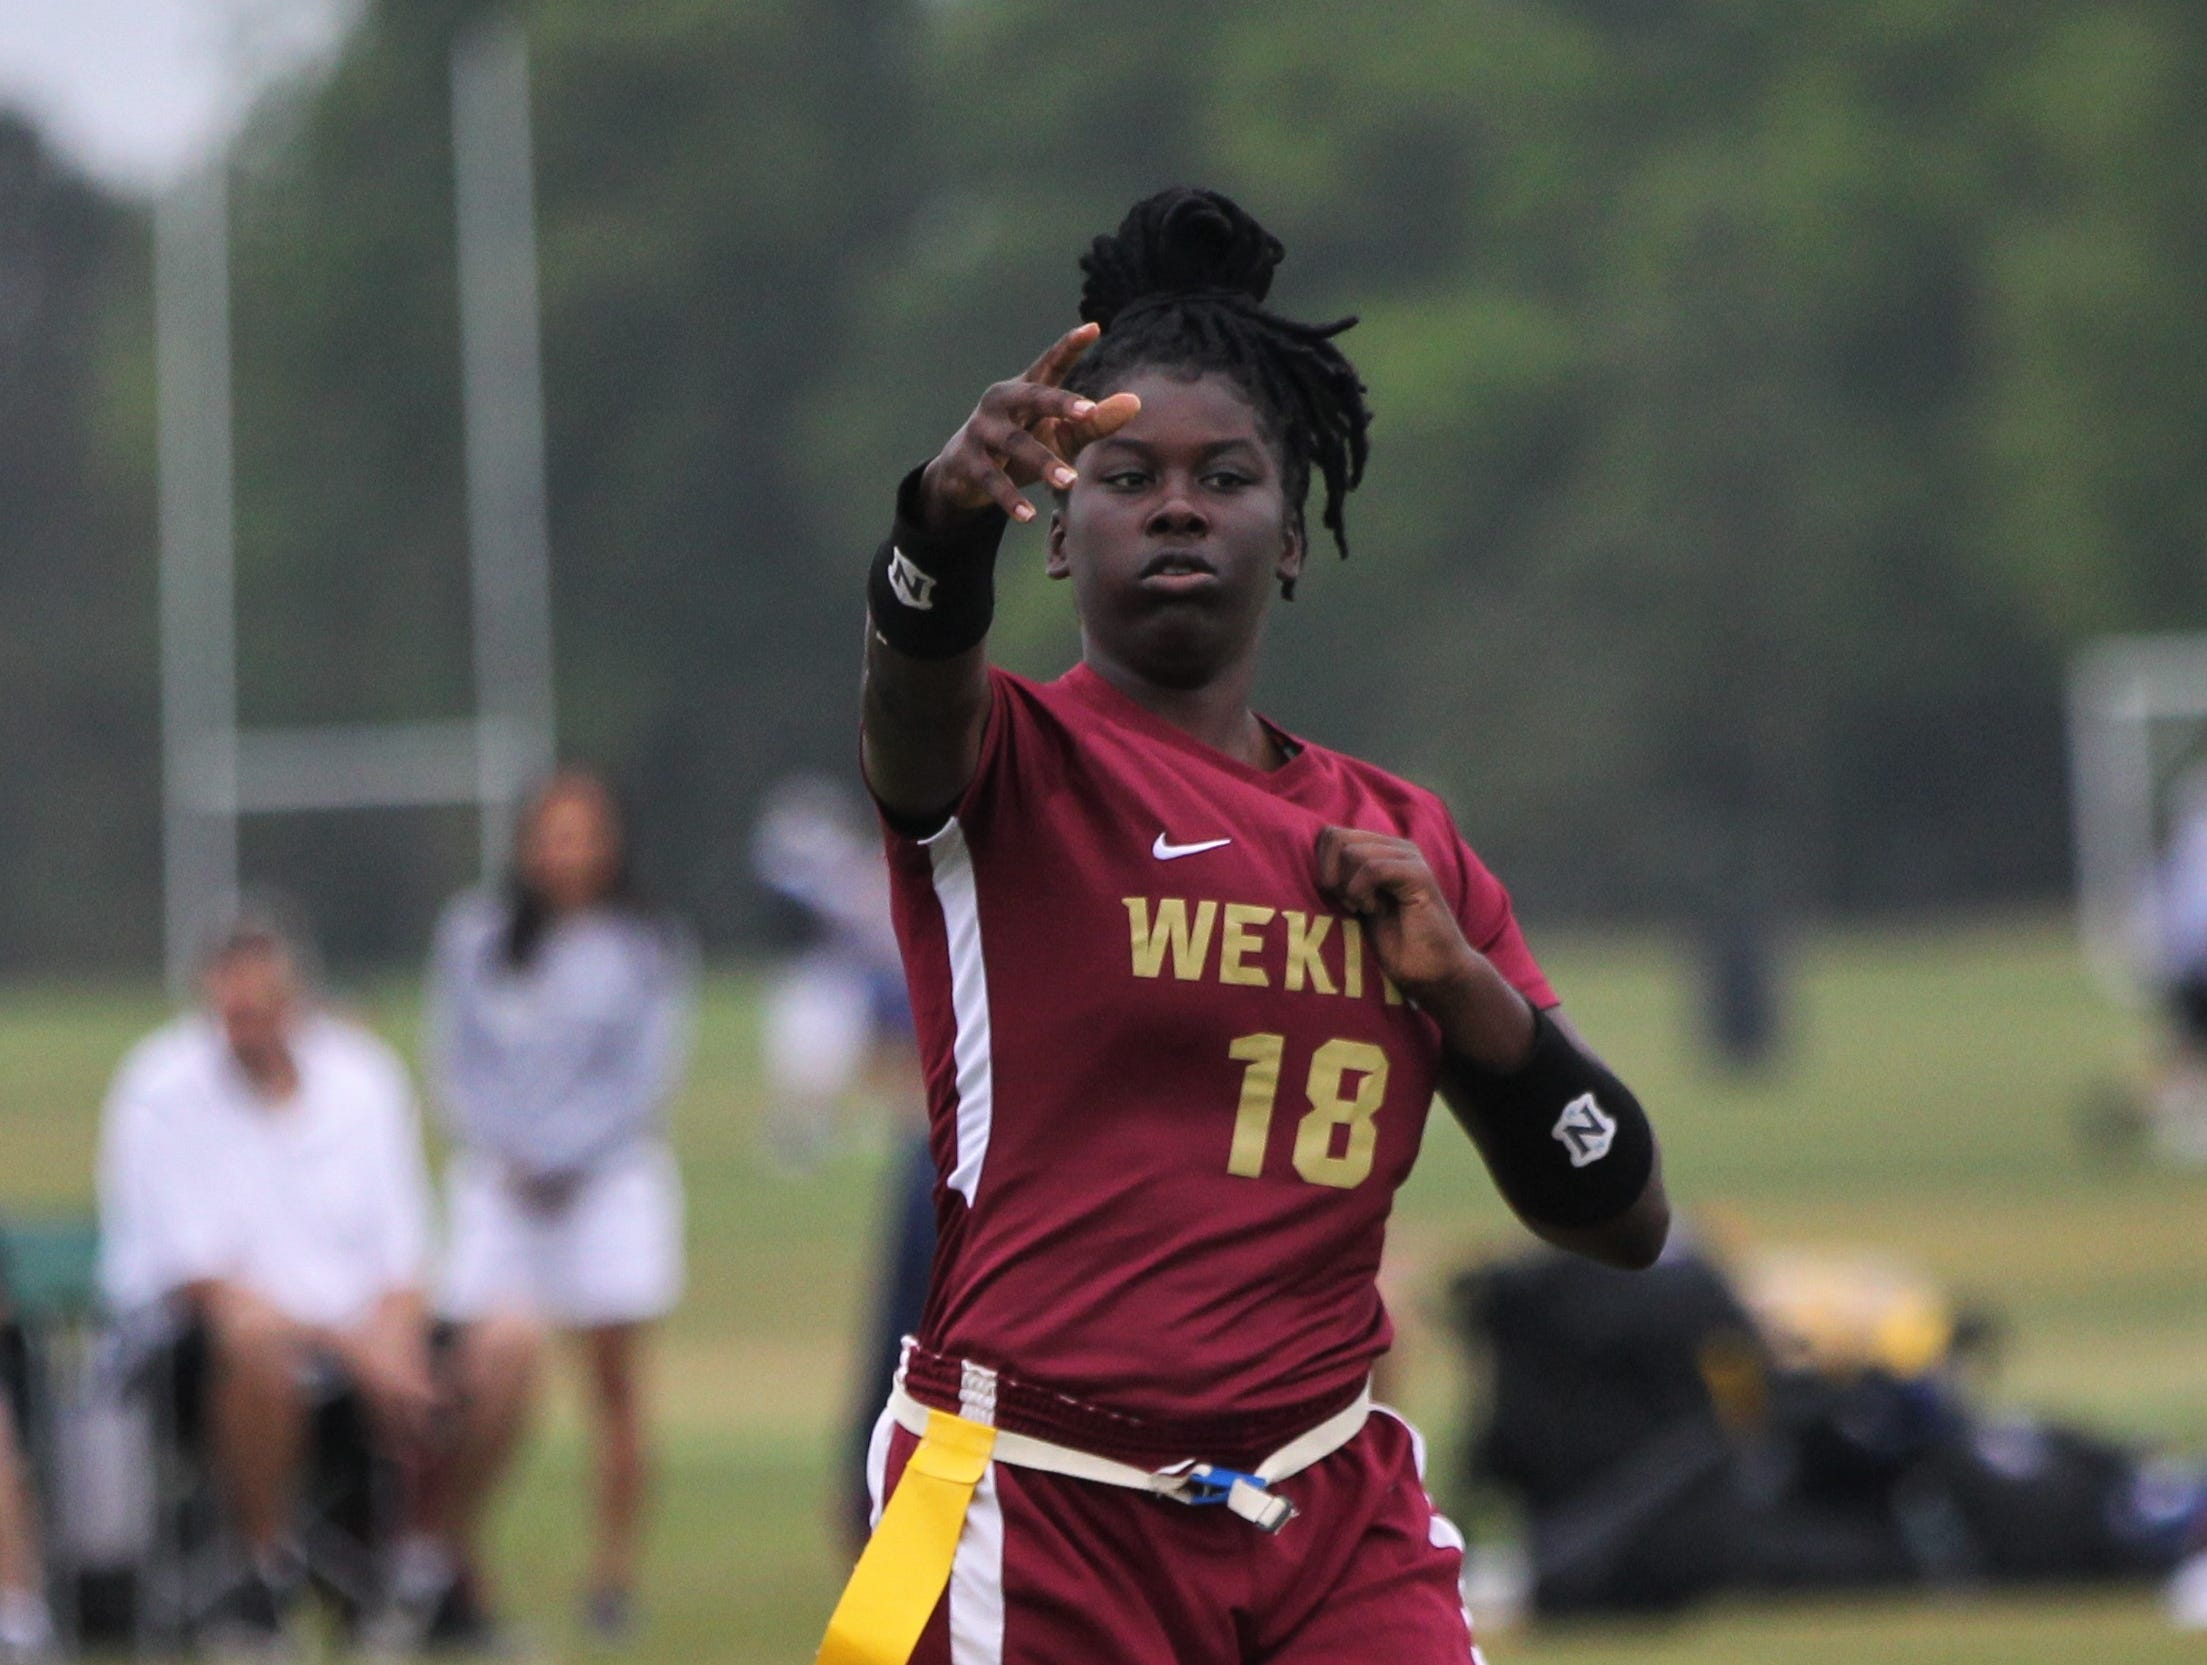 Wekiva plays in the 2019 Capital City Classic at the FSU Rec SportsPlex on April 6, 2019.